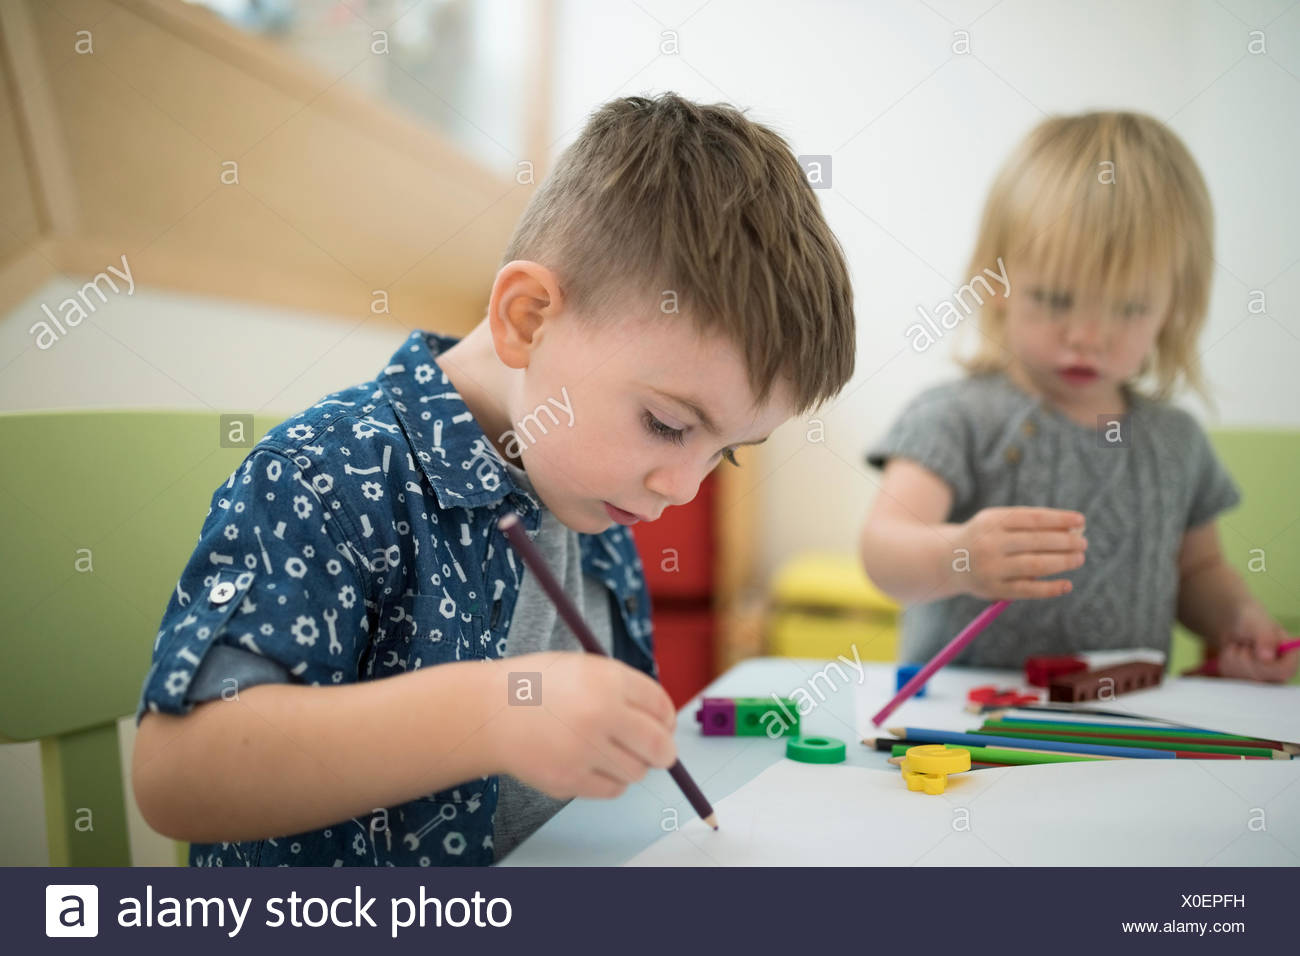 Toddler brother and sister drawing with colored pencils - Stock Image